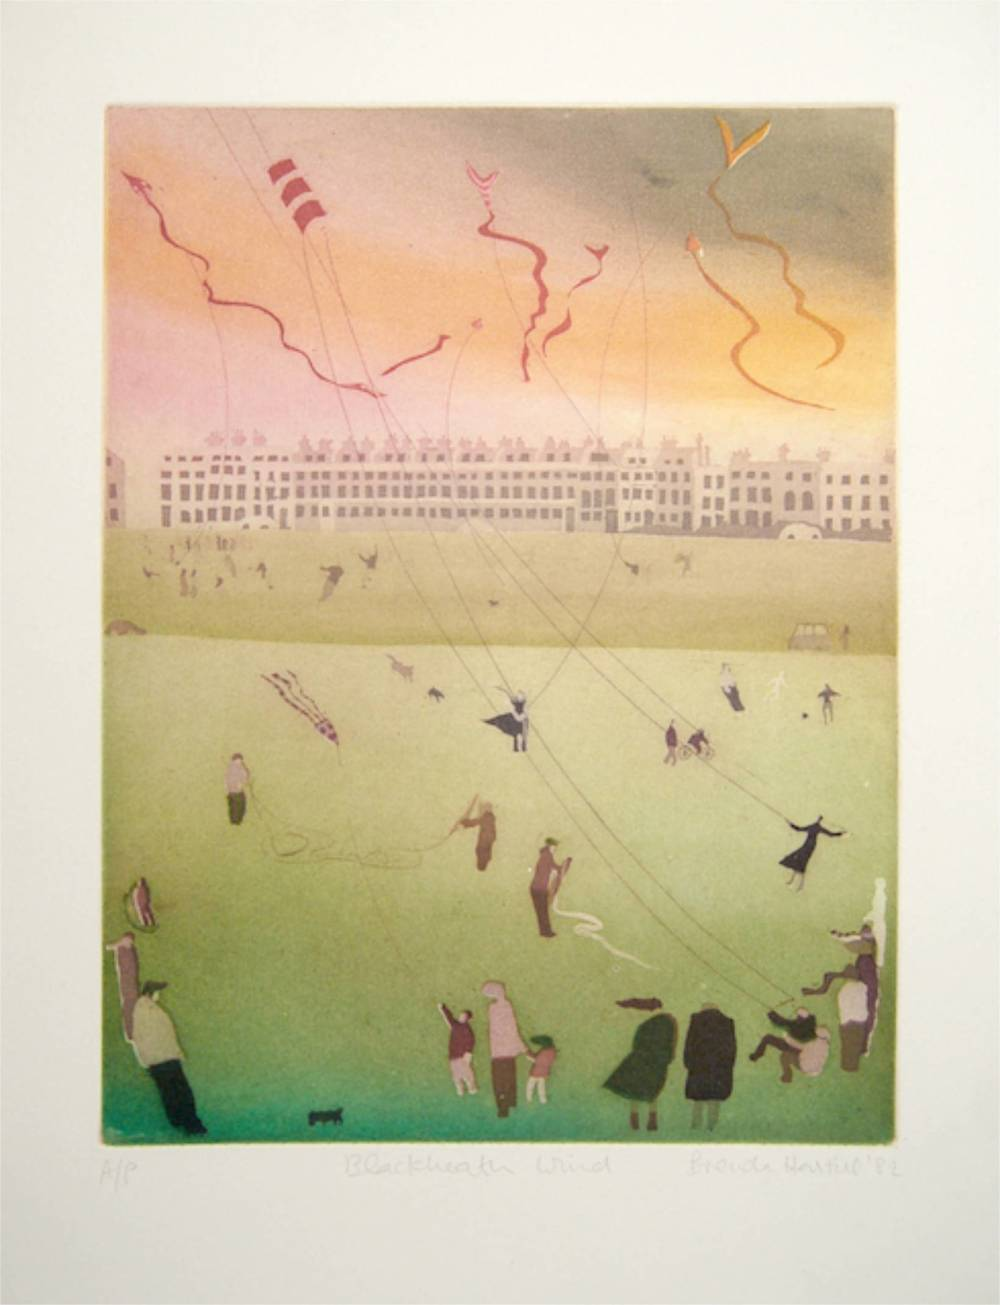 Blackheath Wind aquatint image 27x21cm, framed 38x31cm rare